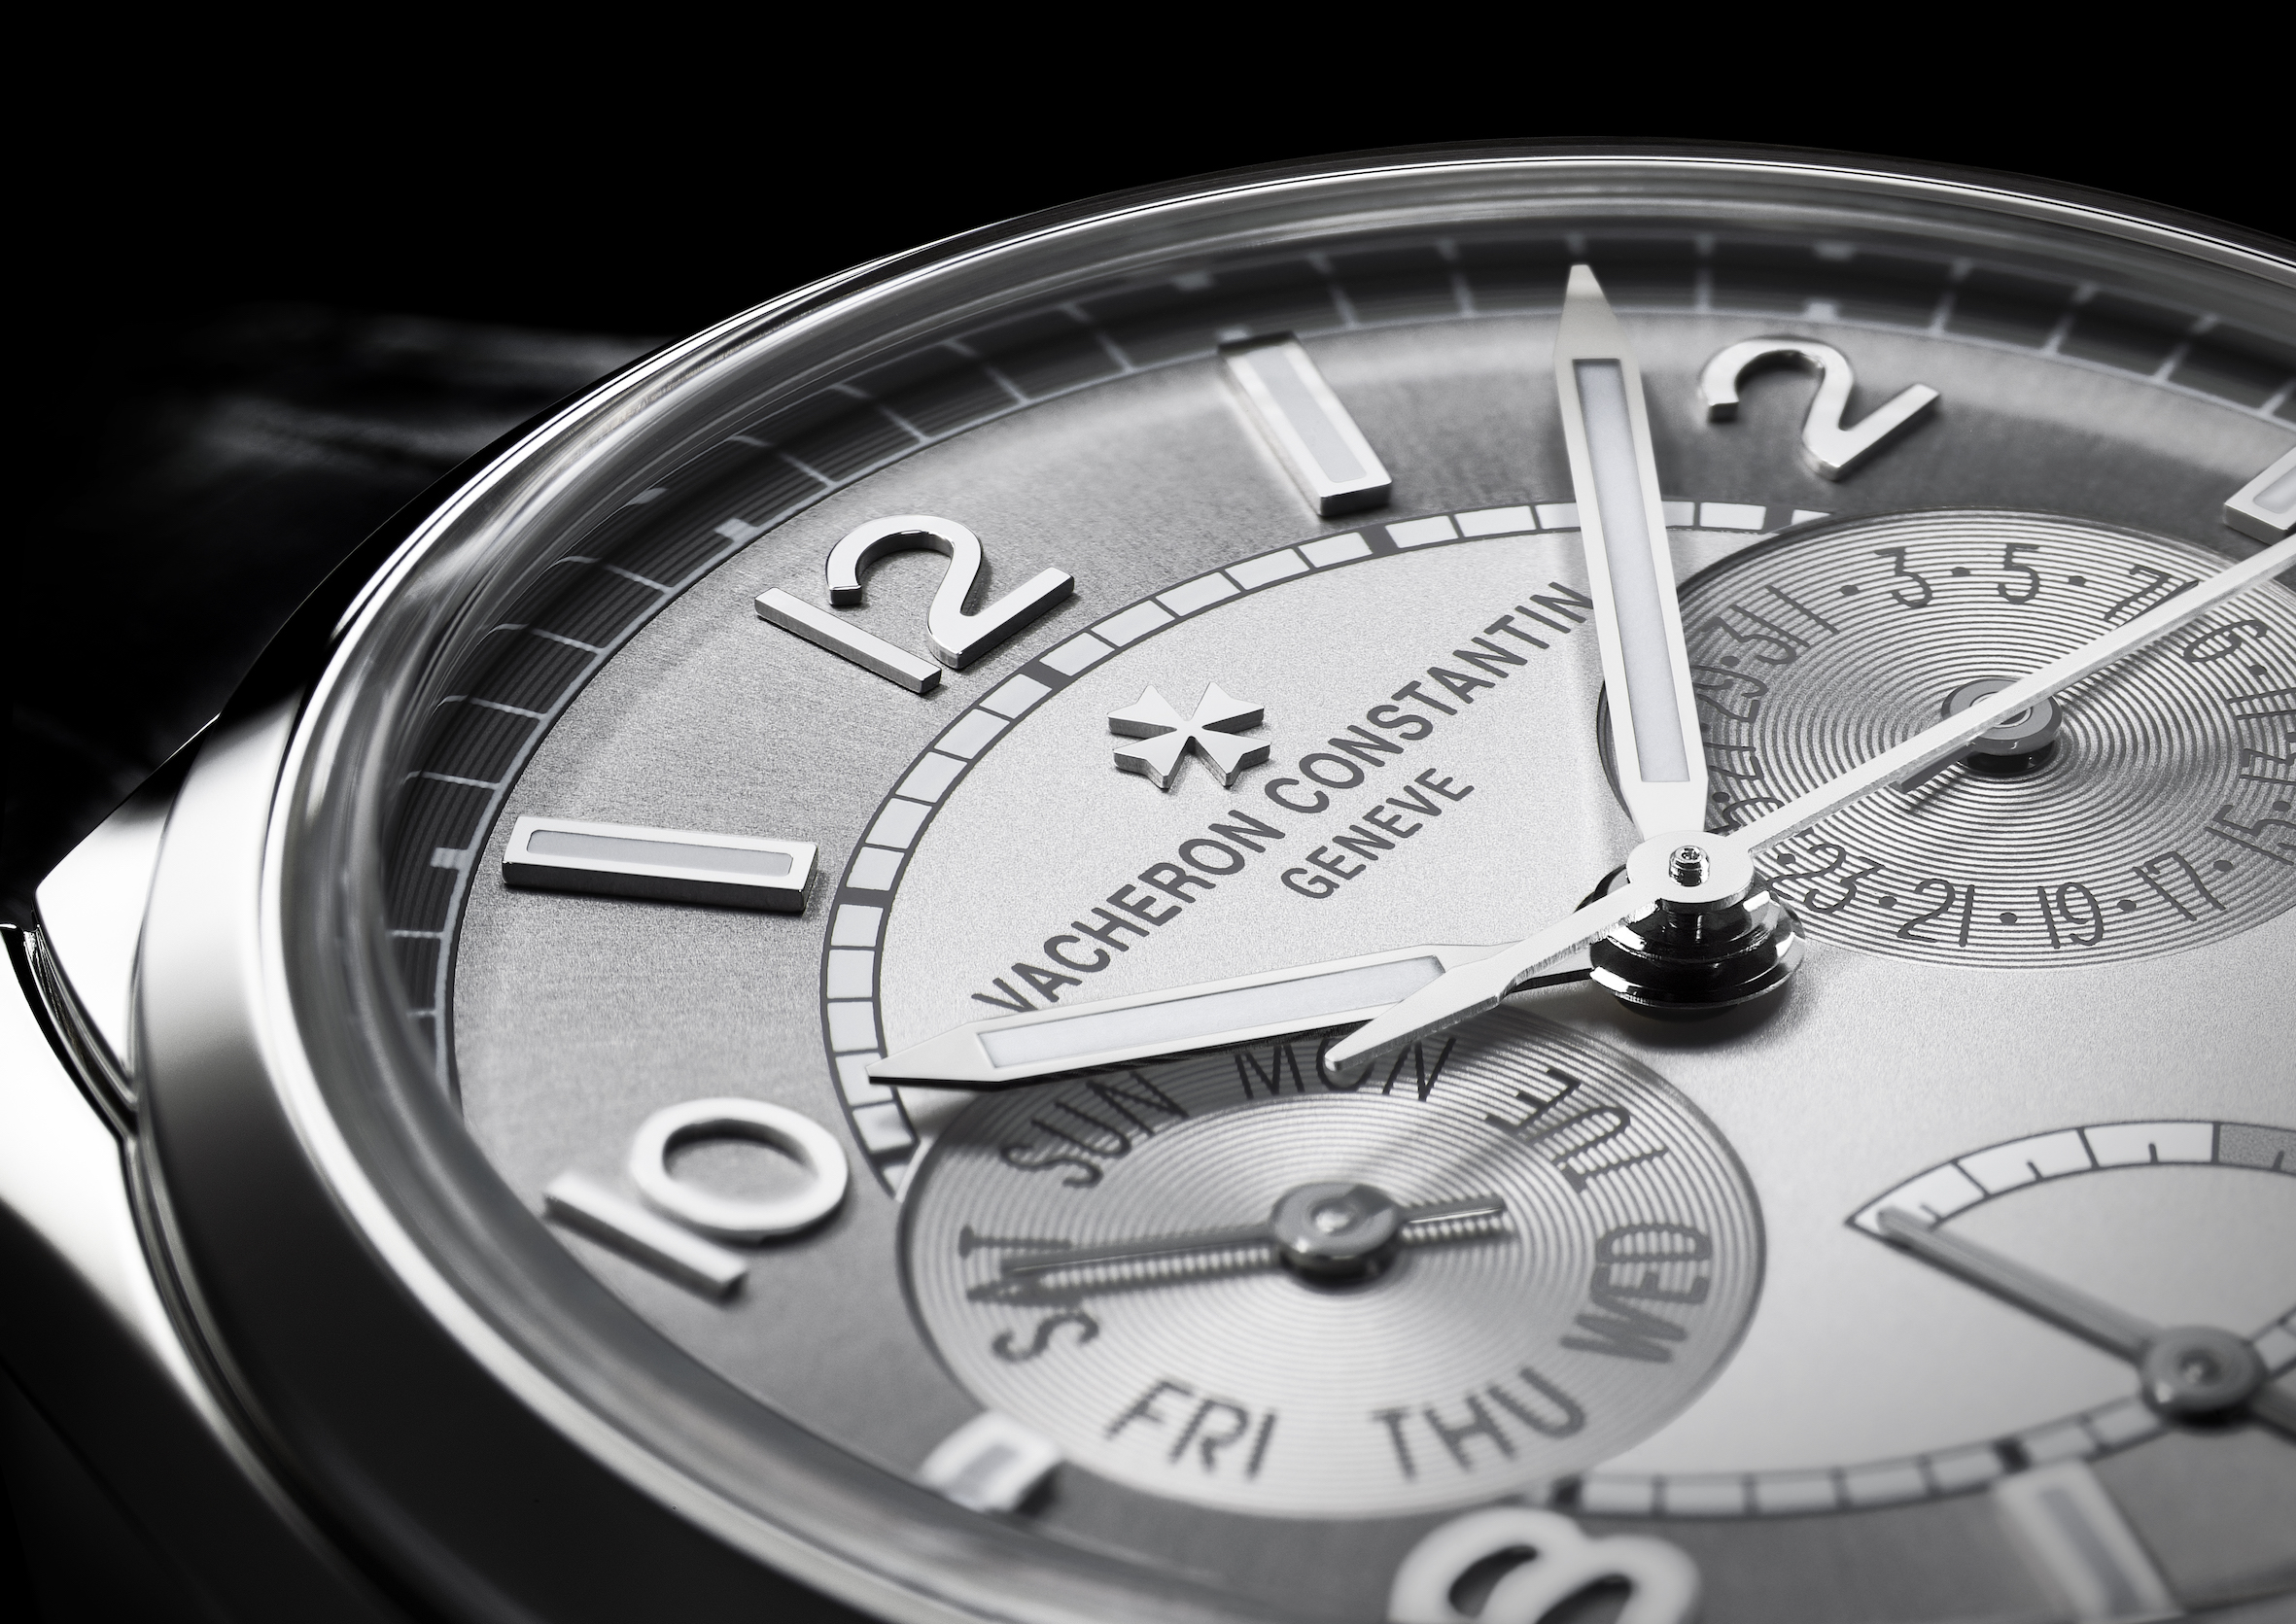 Vacheron Constantin FIFTYSIX day-date with power-reserve indicator. Monochrome dial with double opaline-sunburst effect, enhanced by the additional contrast of its two snailed counters.